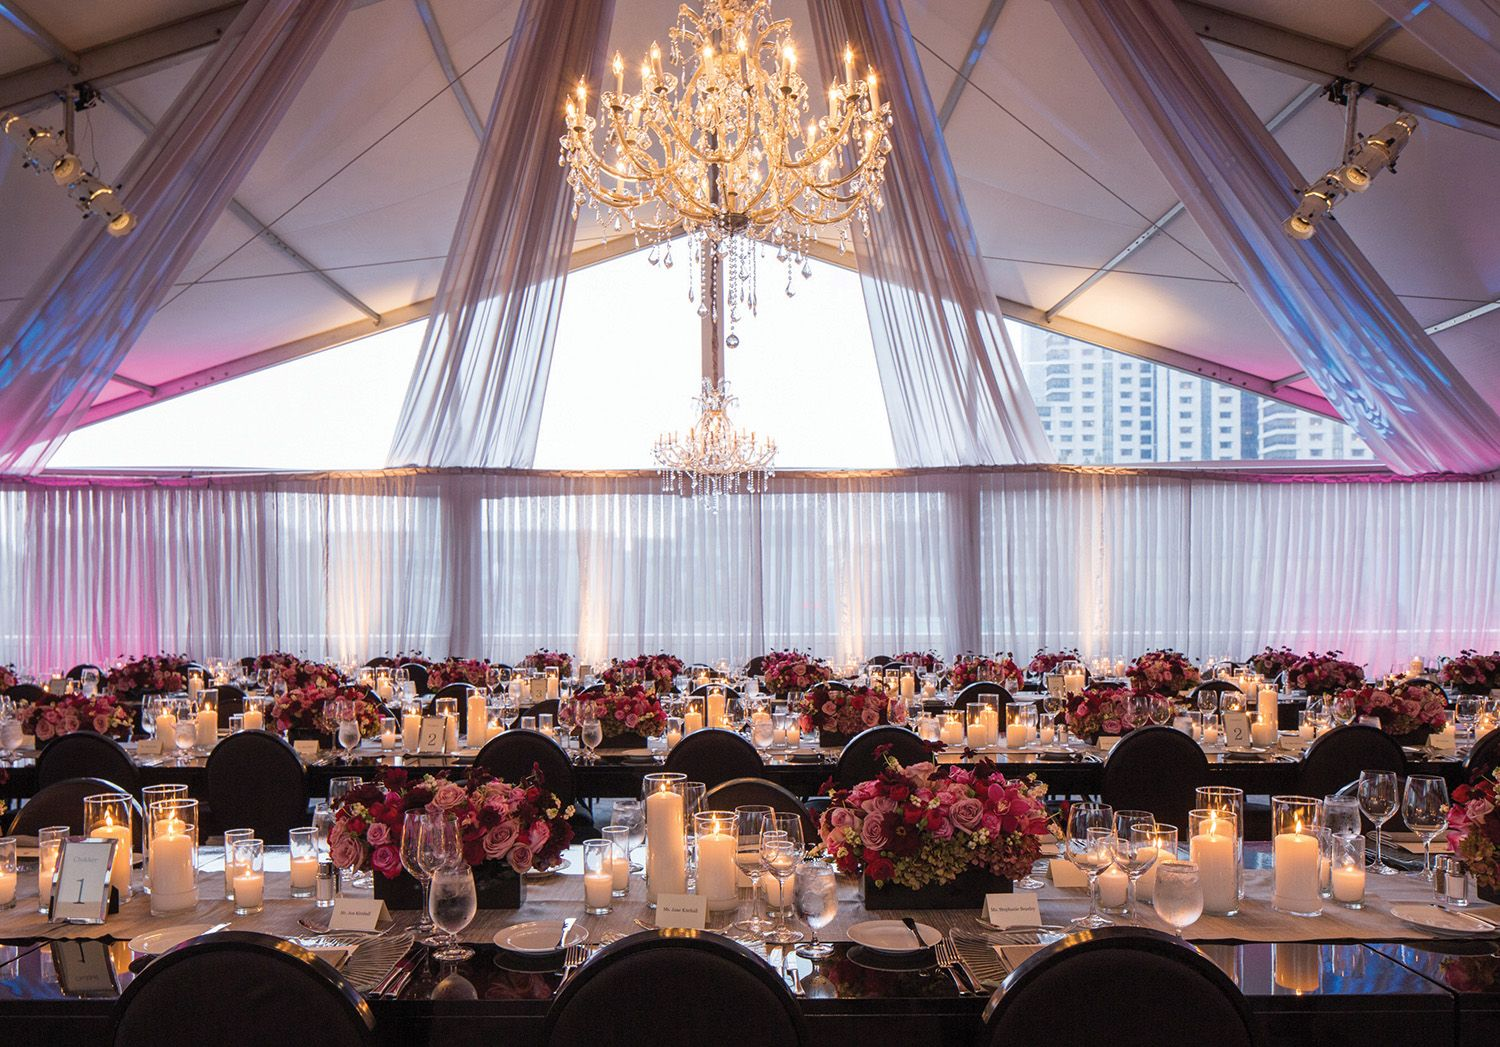 A crystal chandelier hangs over meticulously decorated tables at a St. Regis wedding